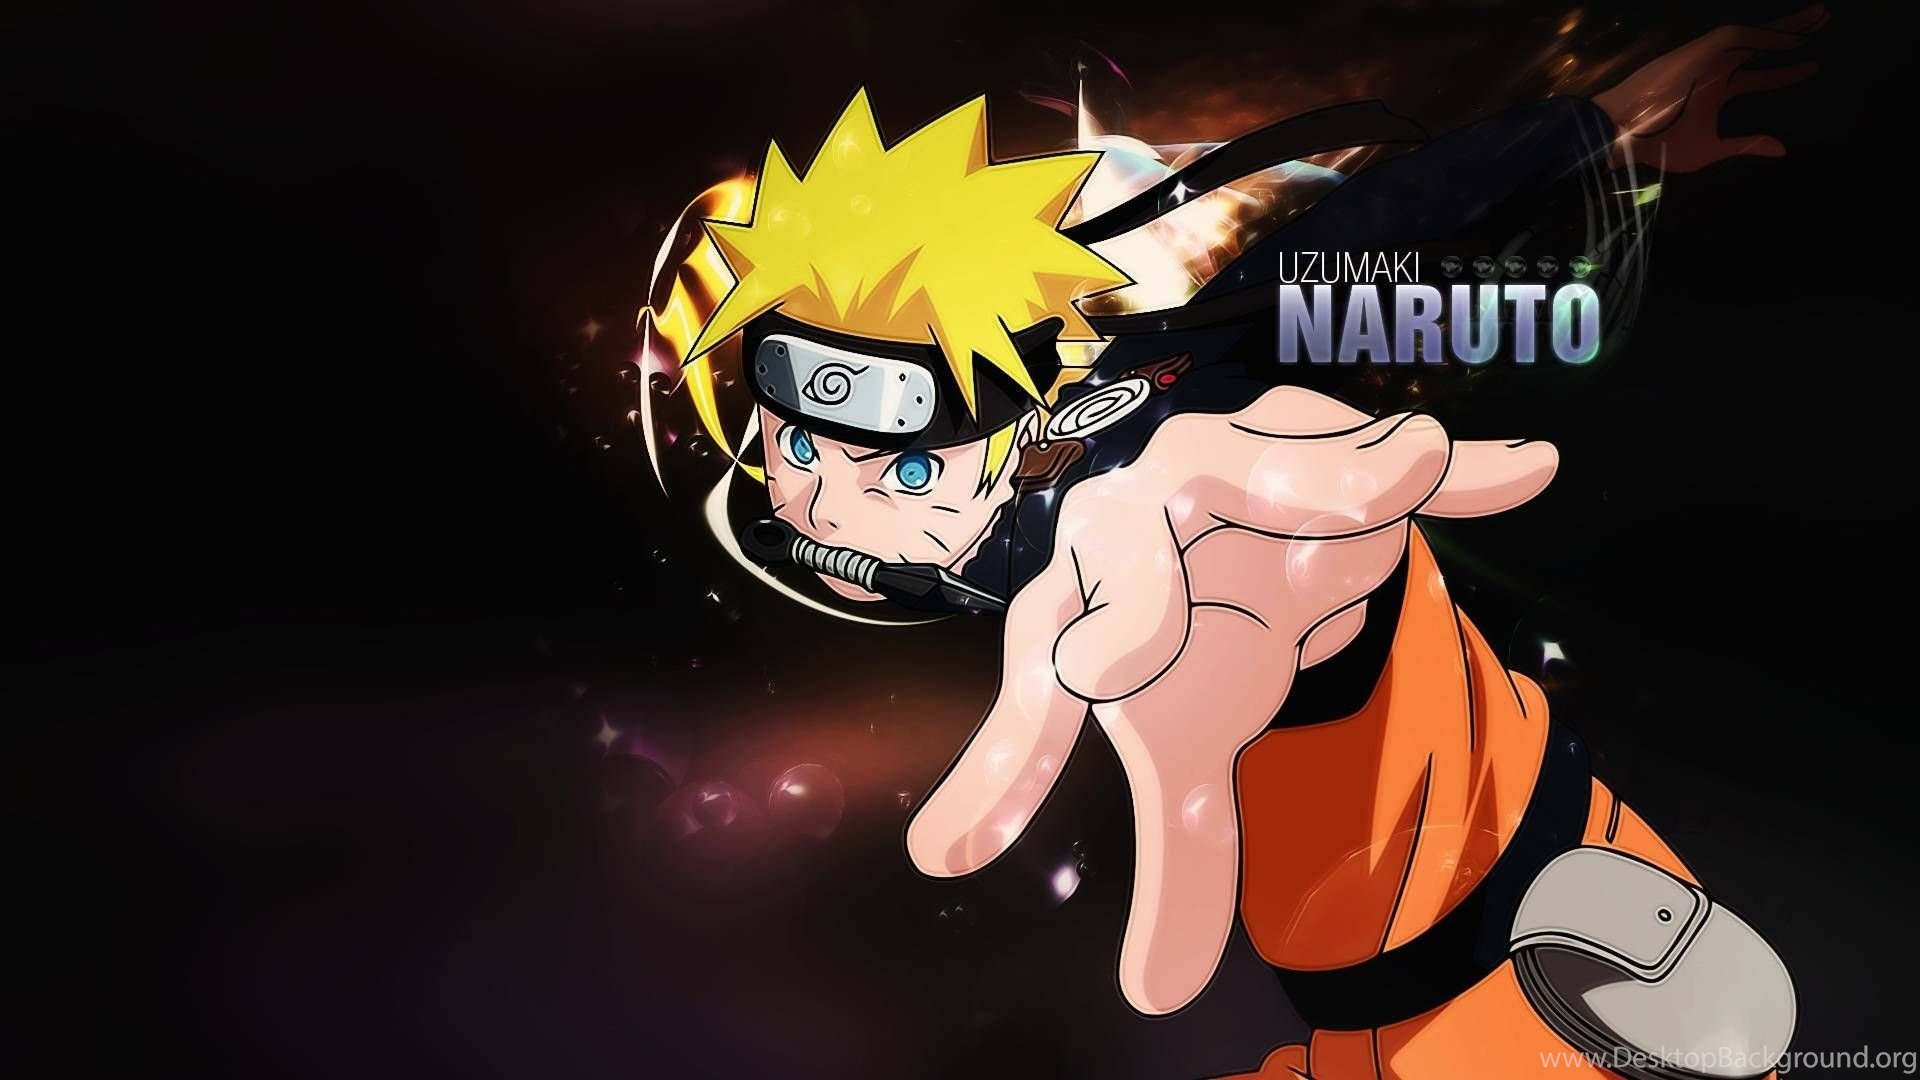 Cool Hd Naruto Wallpapers Free Cool Hd Naruto Wallpapers By Udhao Net Desktop Background